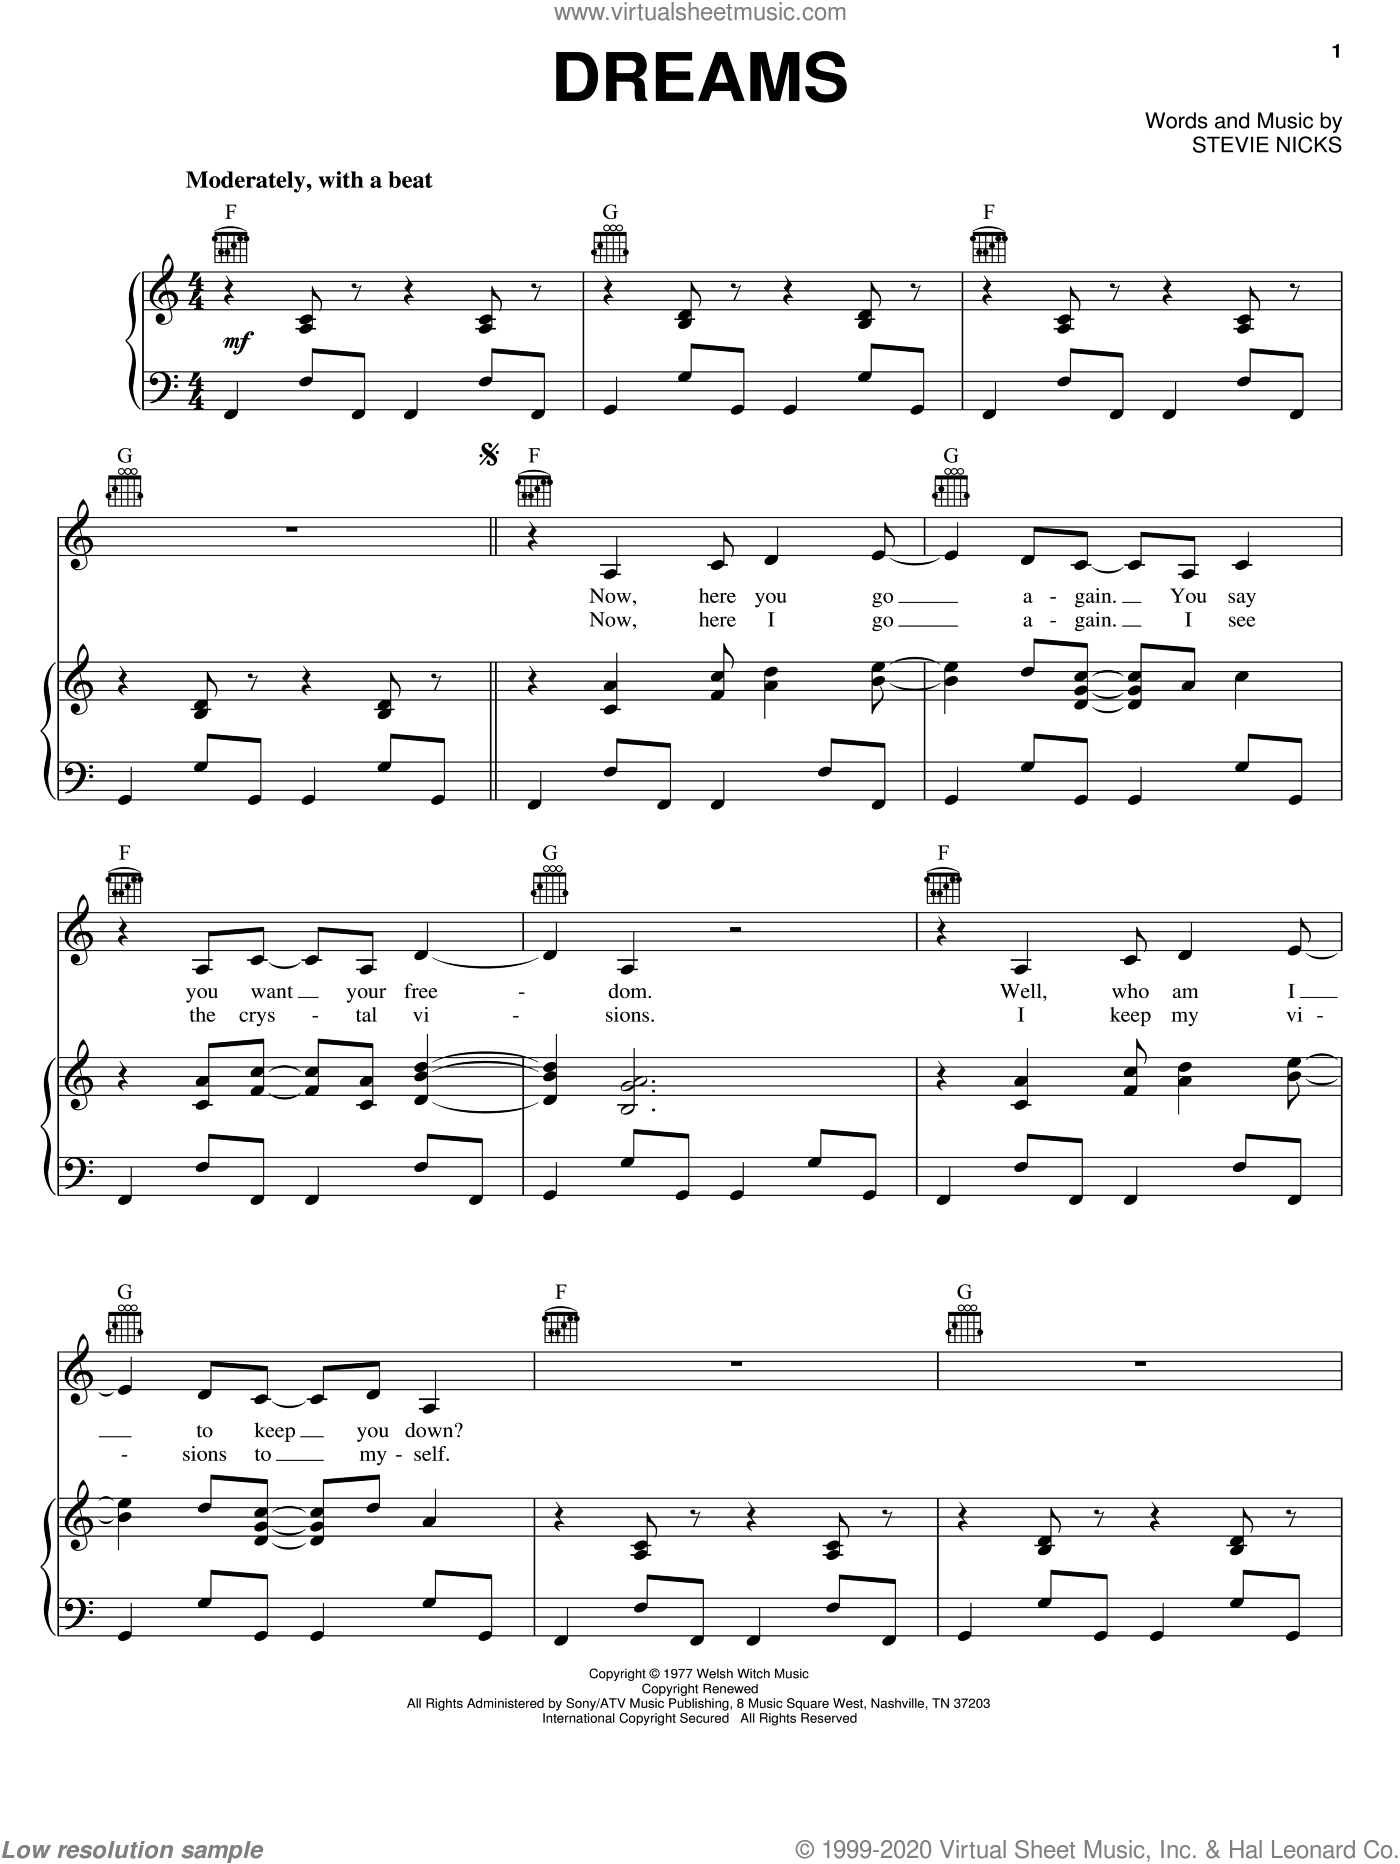 Dreams sheet music for voice, piano or guitar by Fleetwood Mac and Stevie Nicks, intermediate skill level